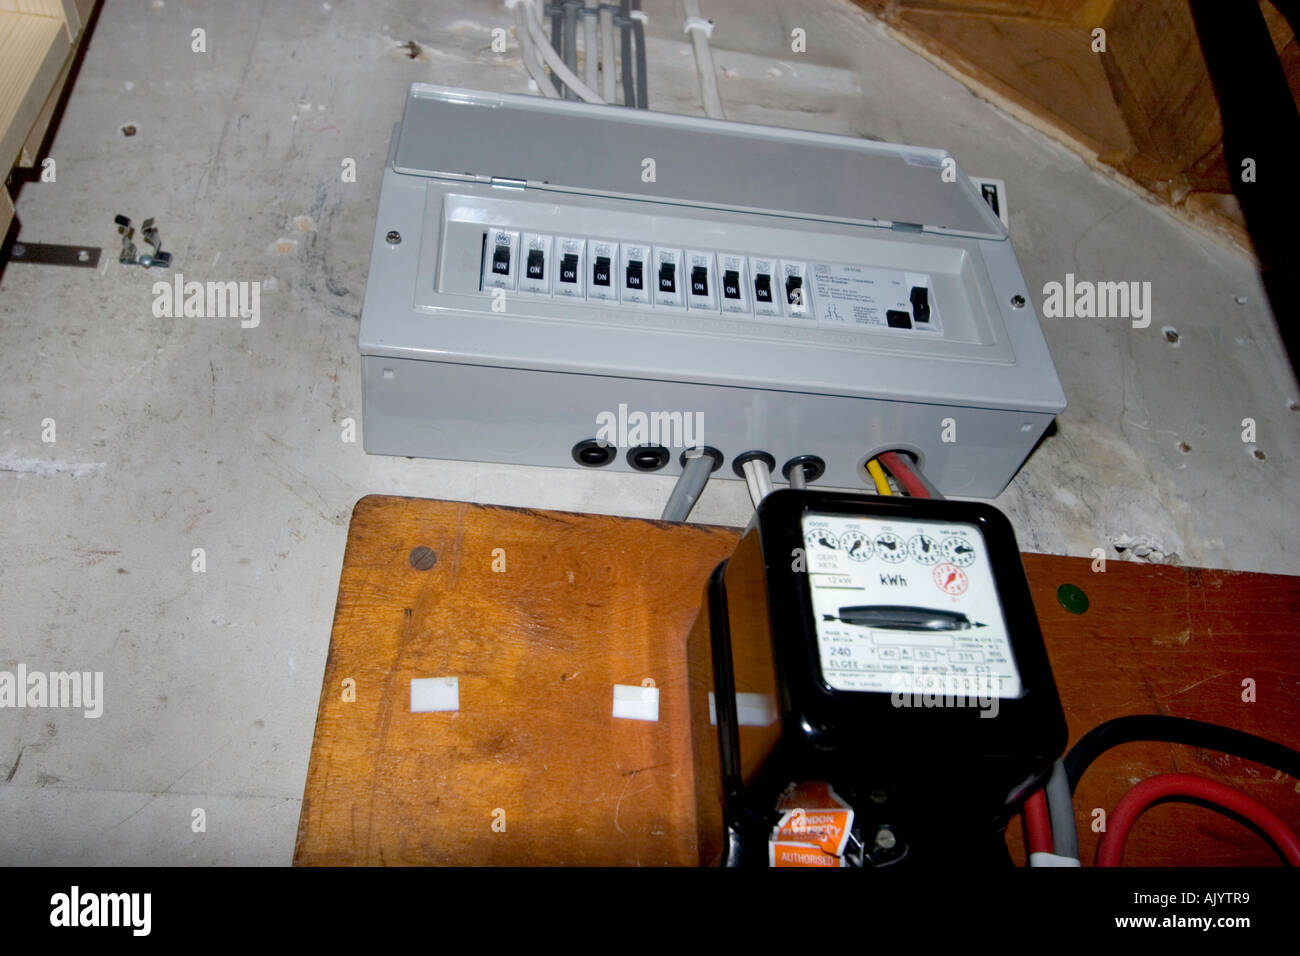 uk electrical fuse box under stairs of house with standard stock rh alamy com home electrical fuse box diagram Scrap Fuse Boxes